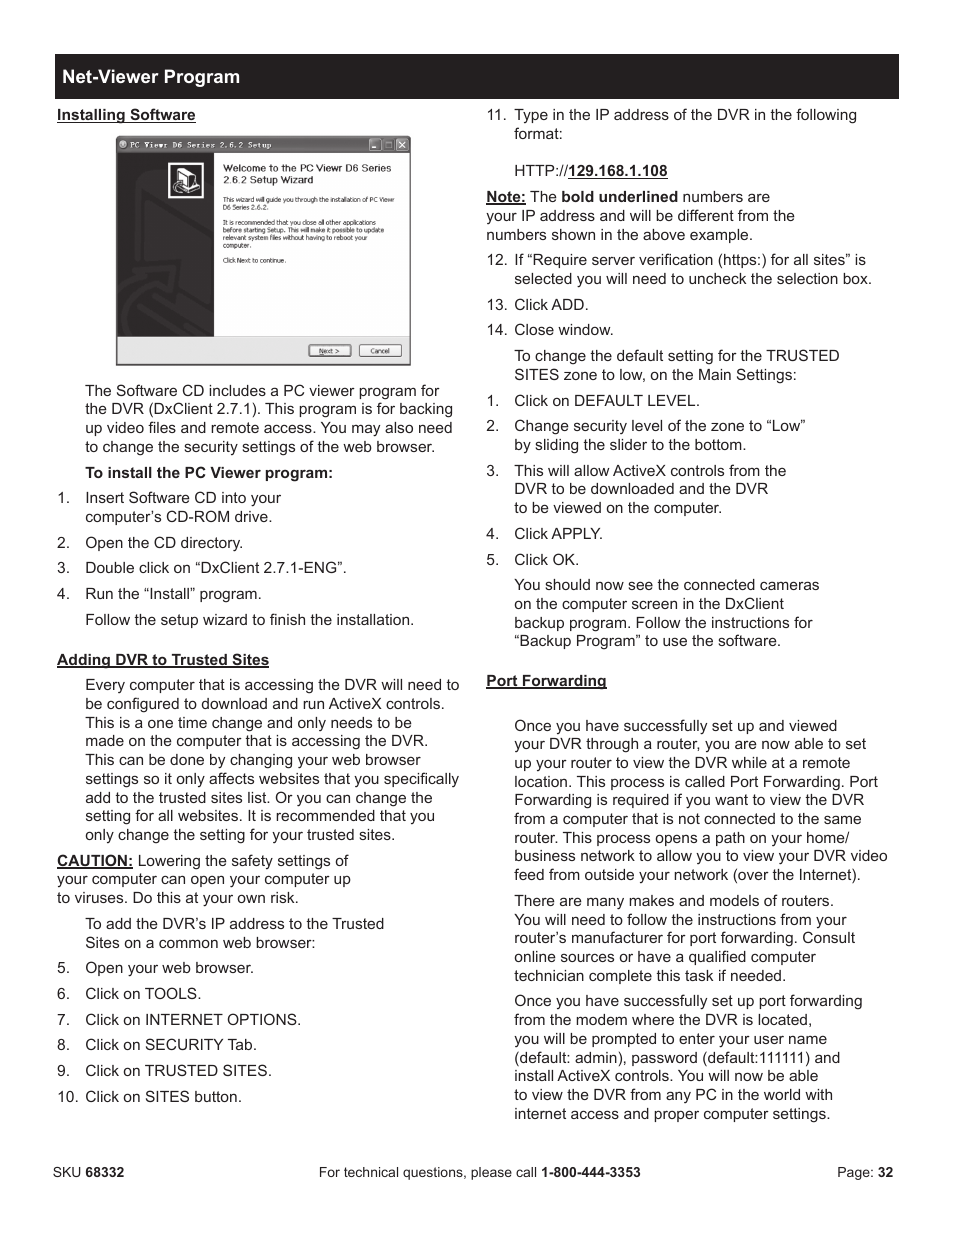 Harbor Freight Tools BUNKER HILL SECURITY 68332 User Manual | Page